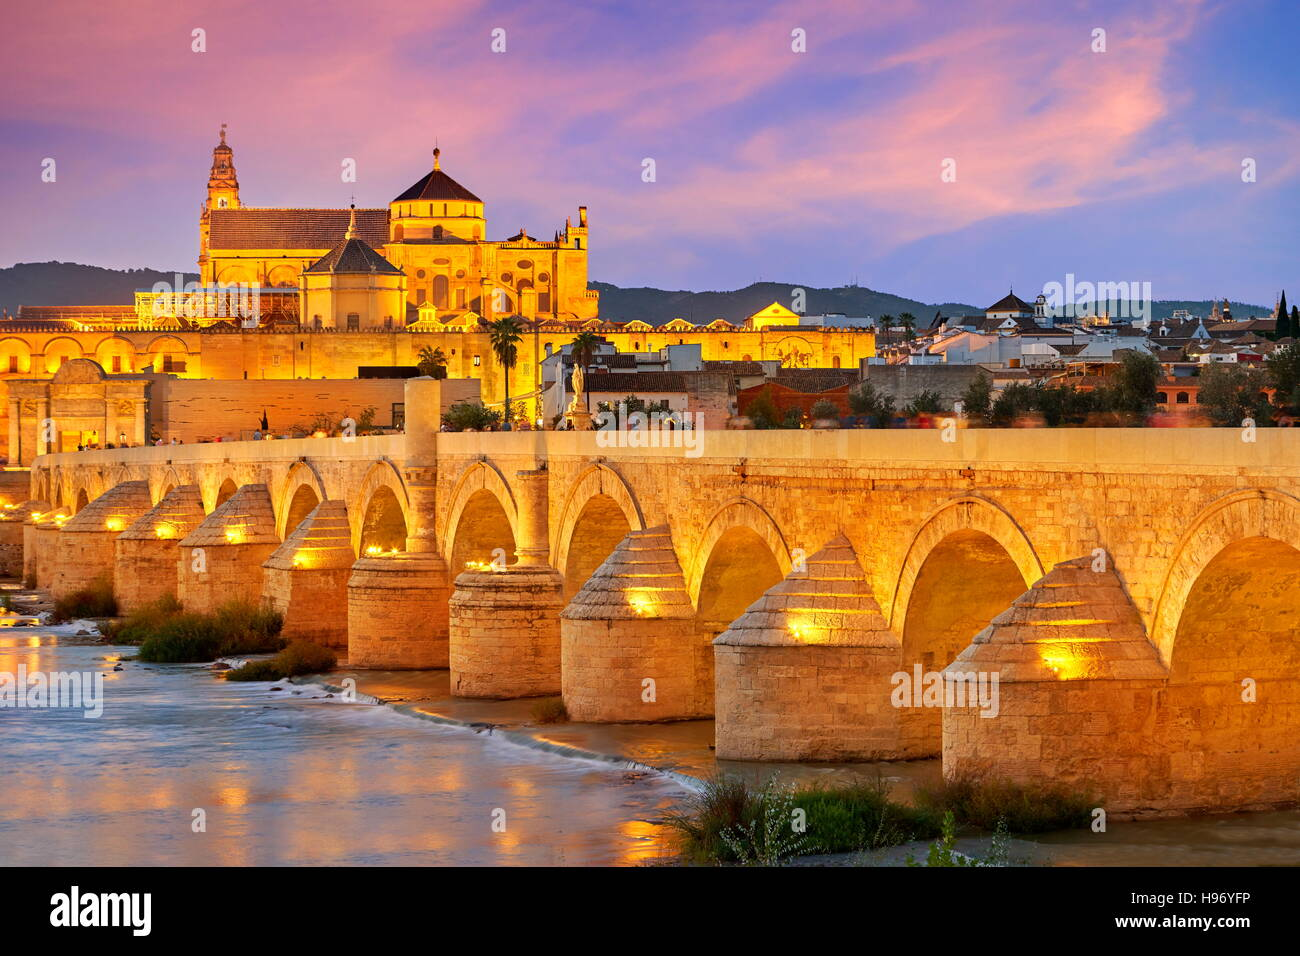 Spain - Roman Bridge and Cordoba Mosque, Andalusia, Cordoba - Stock Image